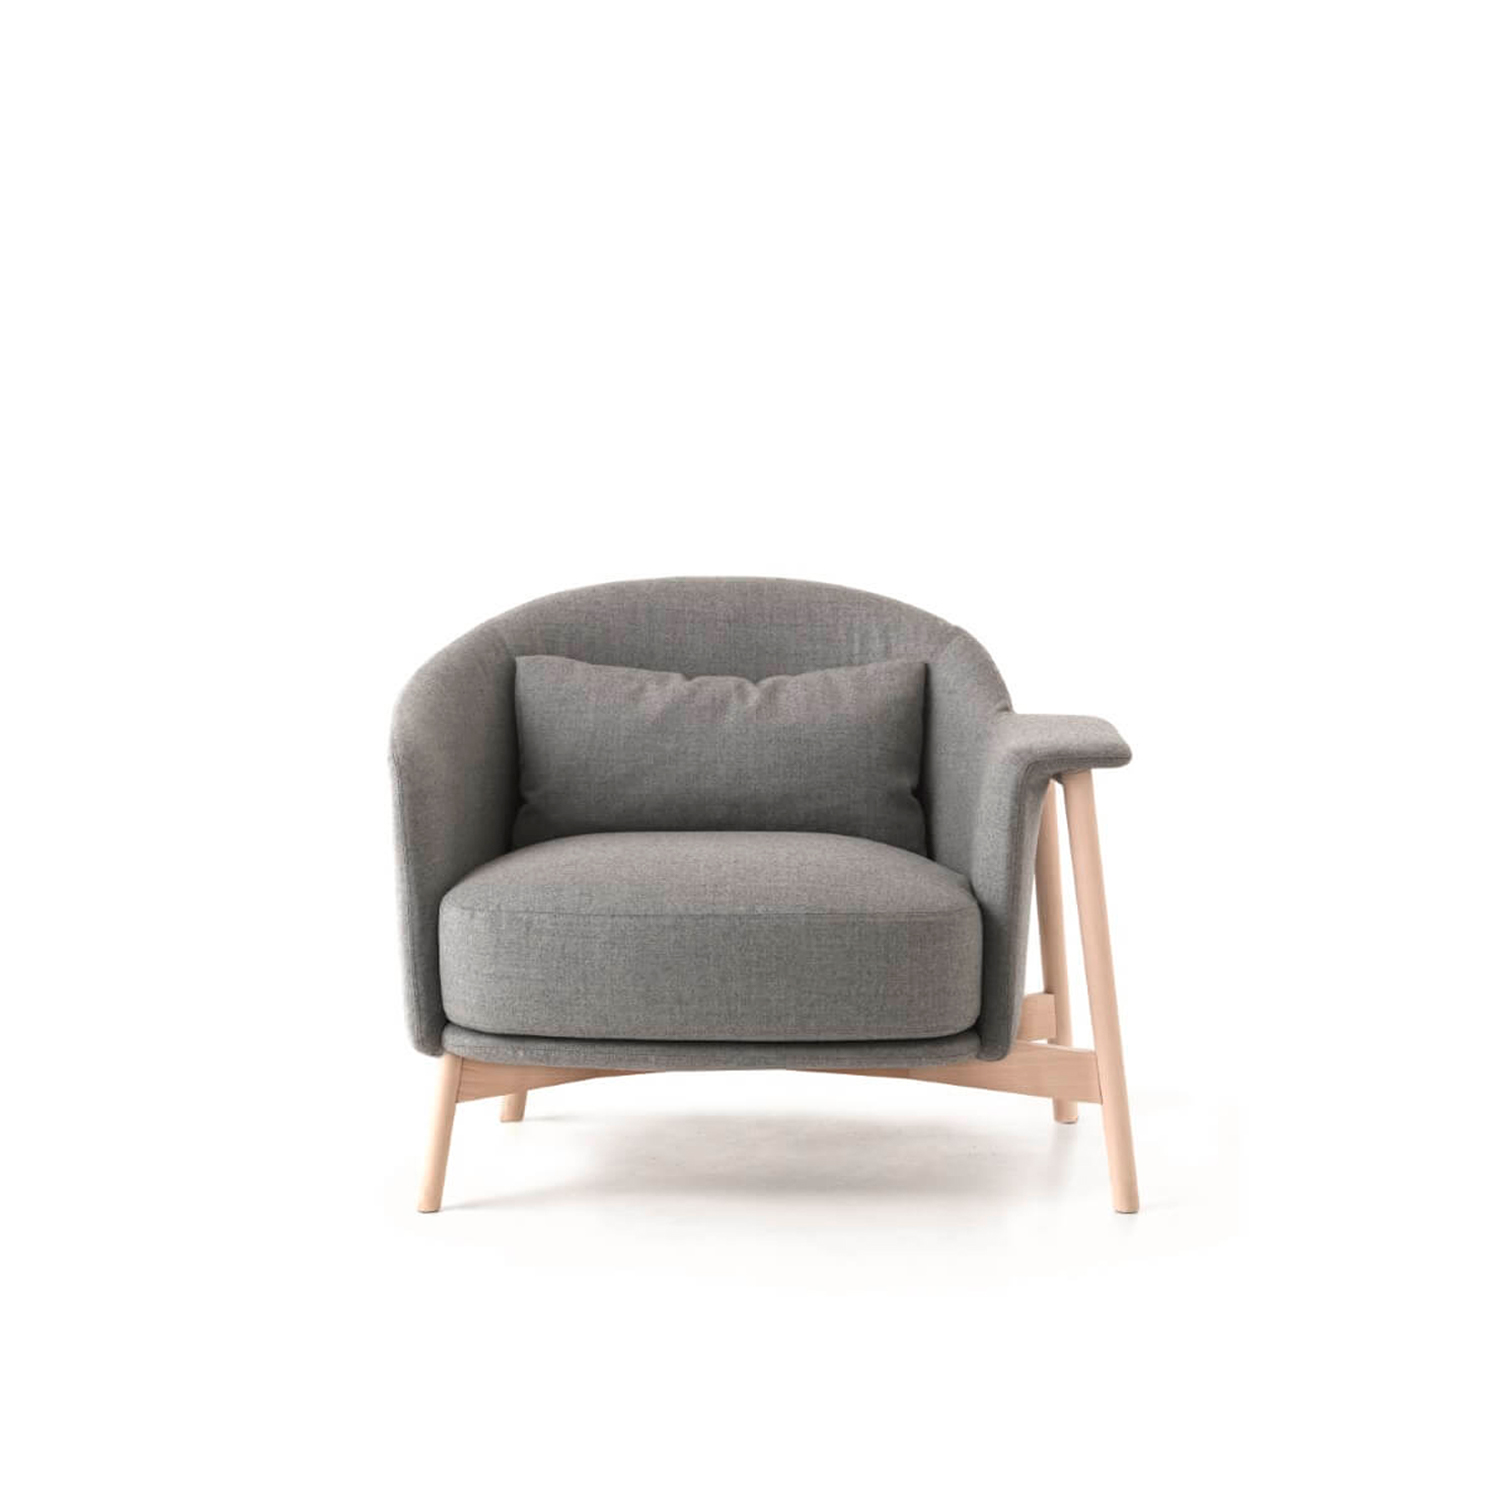 Kepi Lounge Armchair with Wooden Feet - The Kepi armchair's sober design and vaguely Nordic look are softened by rounded lines that add character and improve comfort.‎ Its clean design and nonchalant elegance make it perfect for the home and contract environments.‎ The structure in bleached ash wood becomes its characteristic trait.‎ The base is also available in varnished tubular stainless steel.‎ The collection also includes a two-seat sofa and a pouf.‎ Fully removable covers.‎